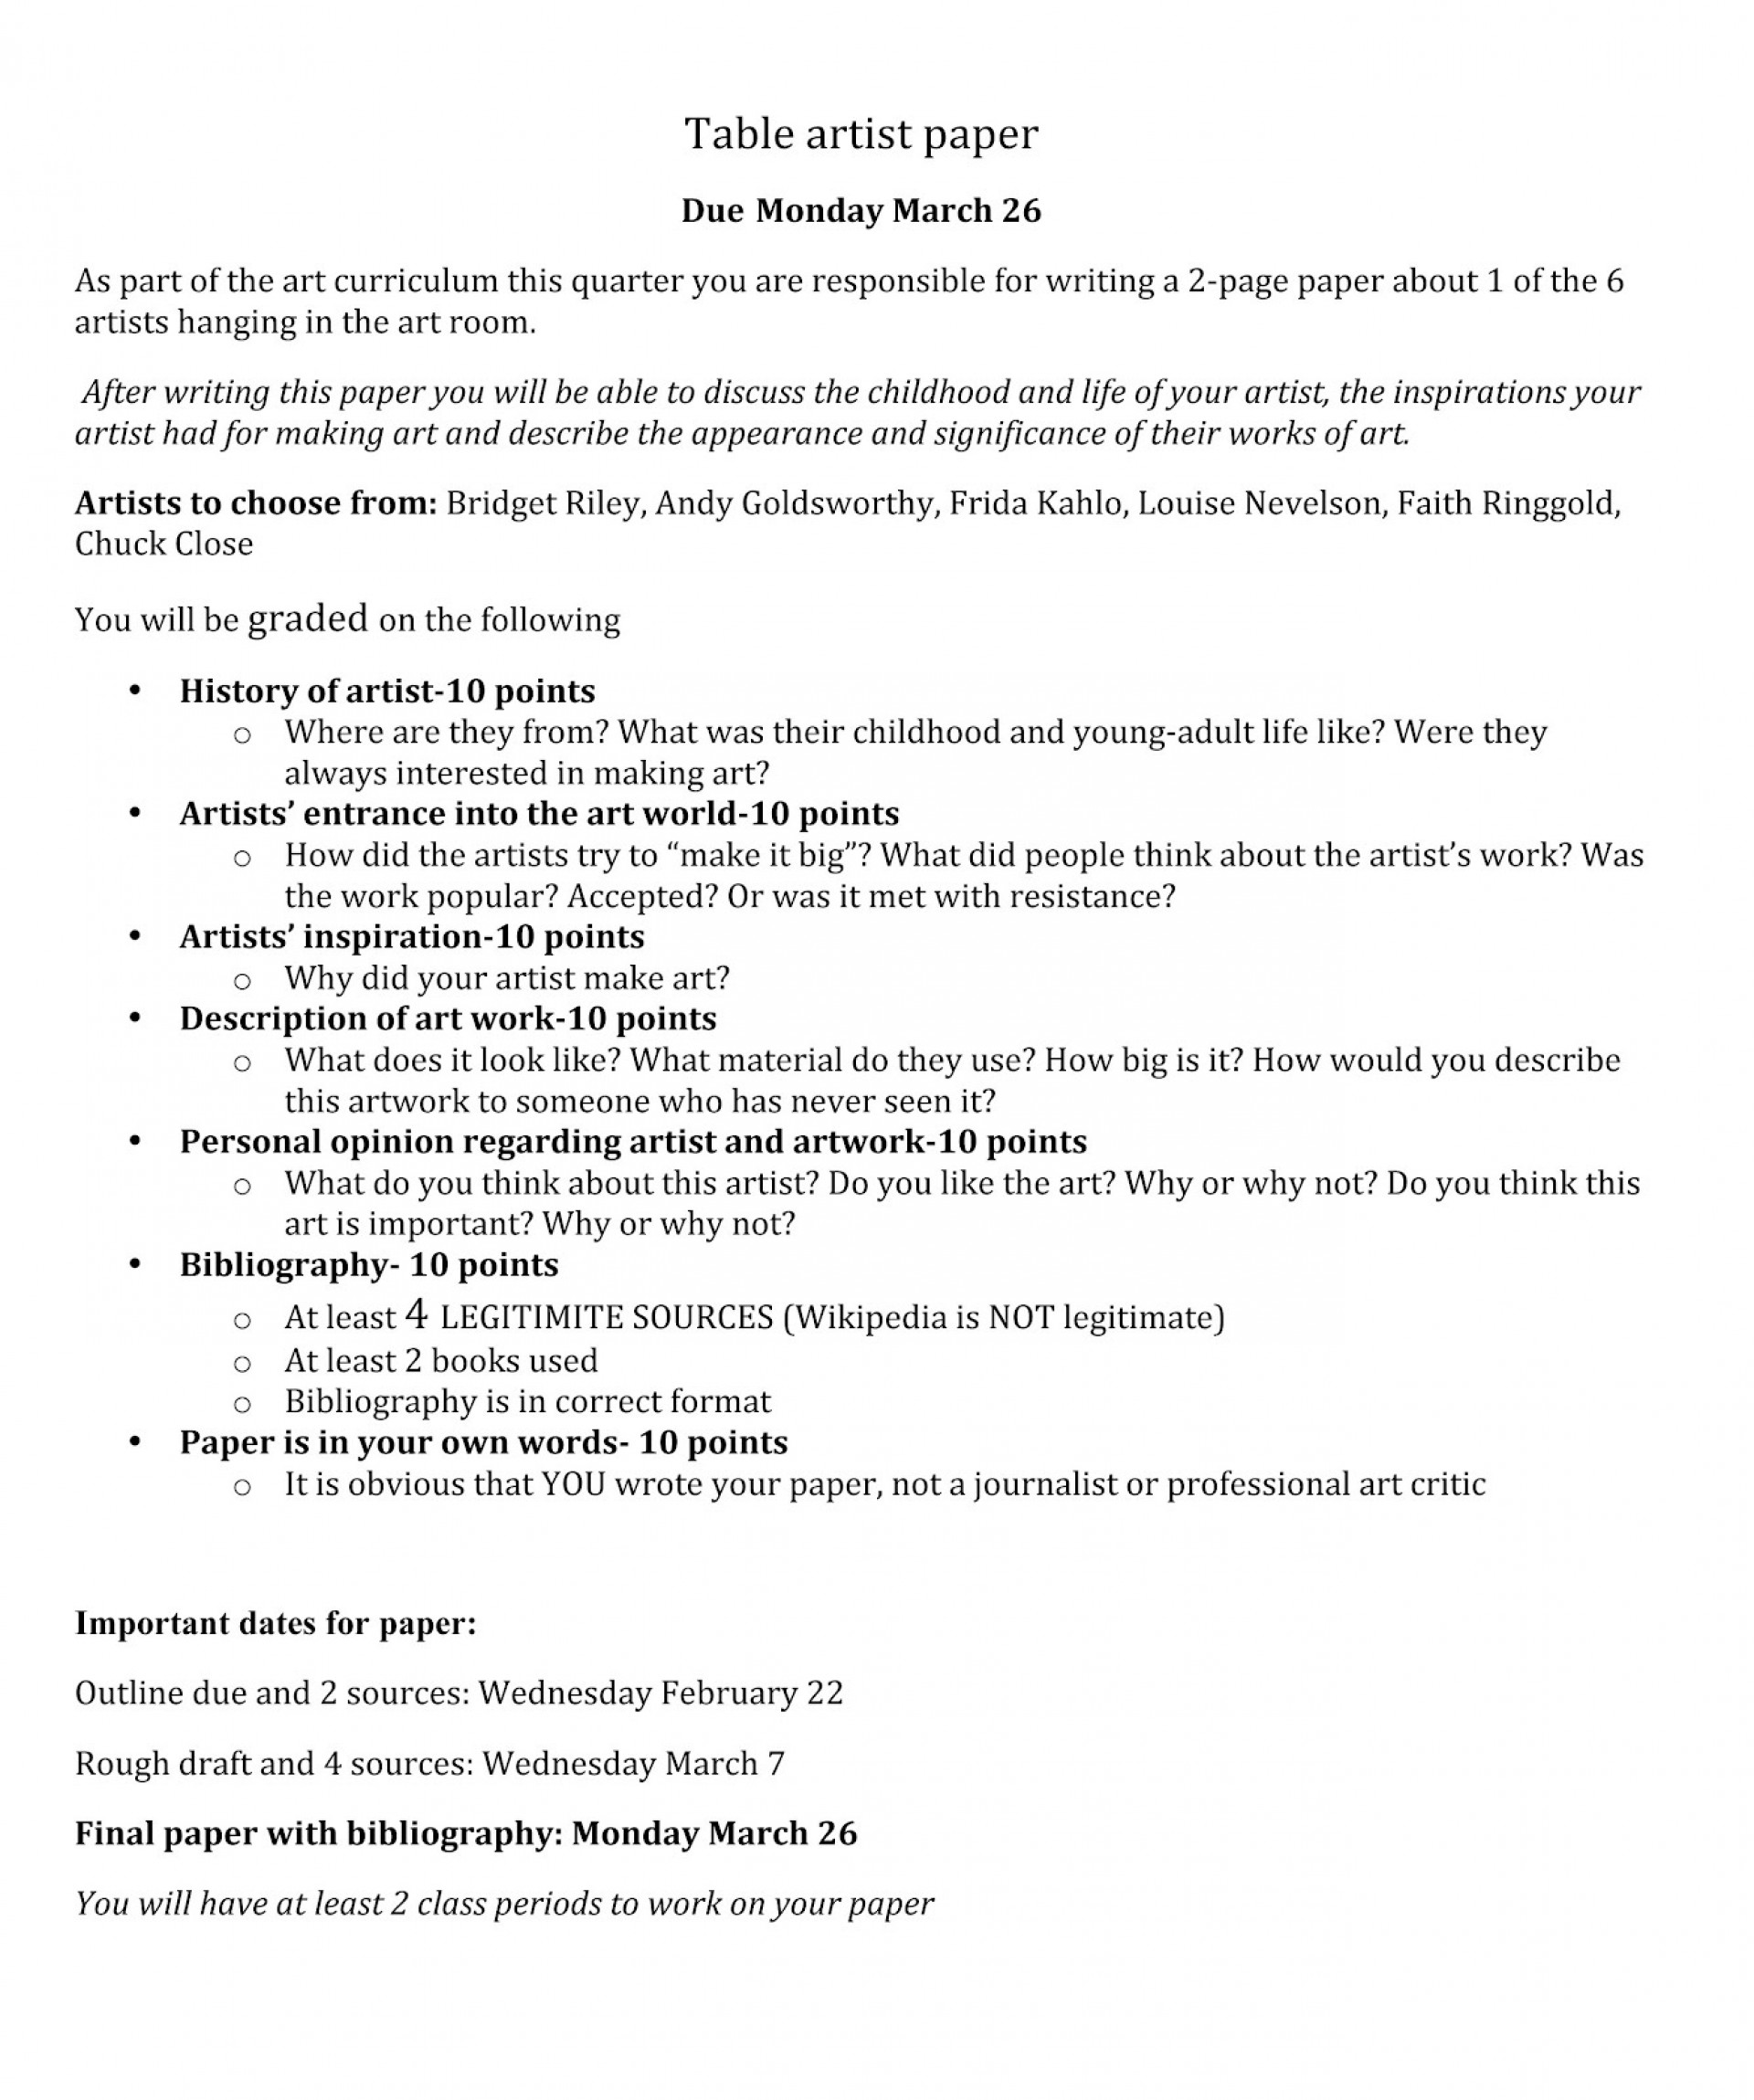 008 How To Make An Outline For History Research Paper Beautiful A 1920